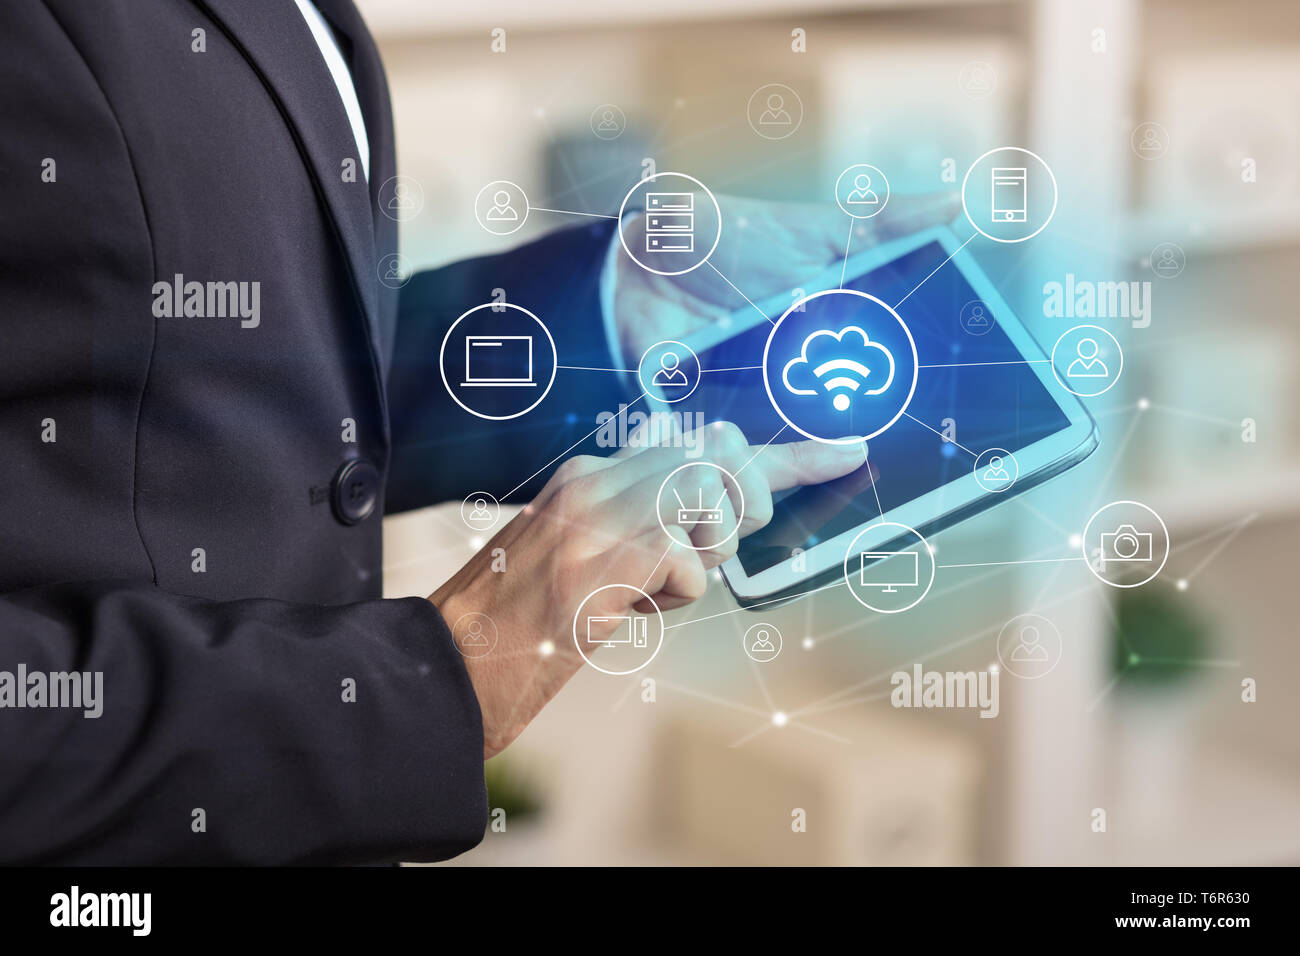 Business woman using tablet with network security and online storage system concept  Stock Photo